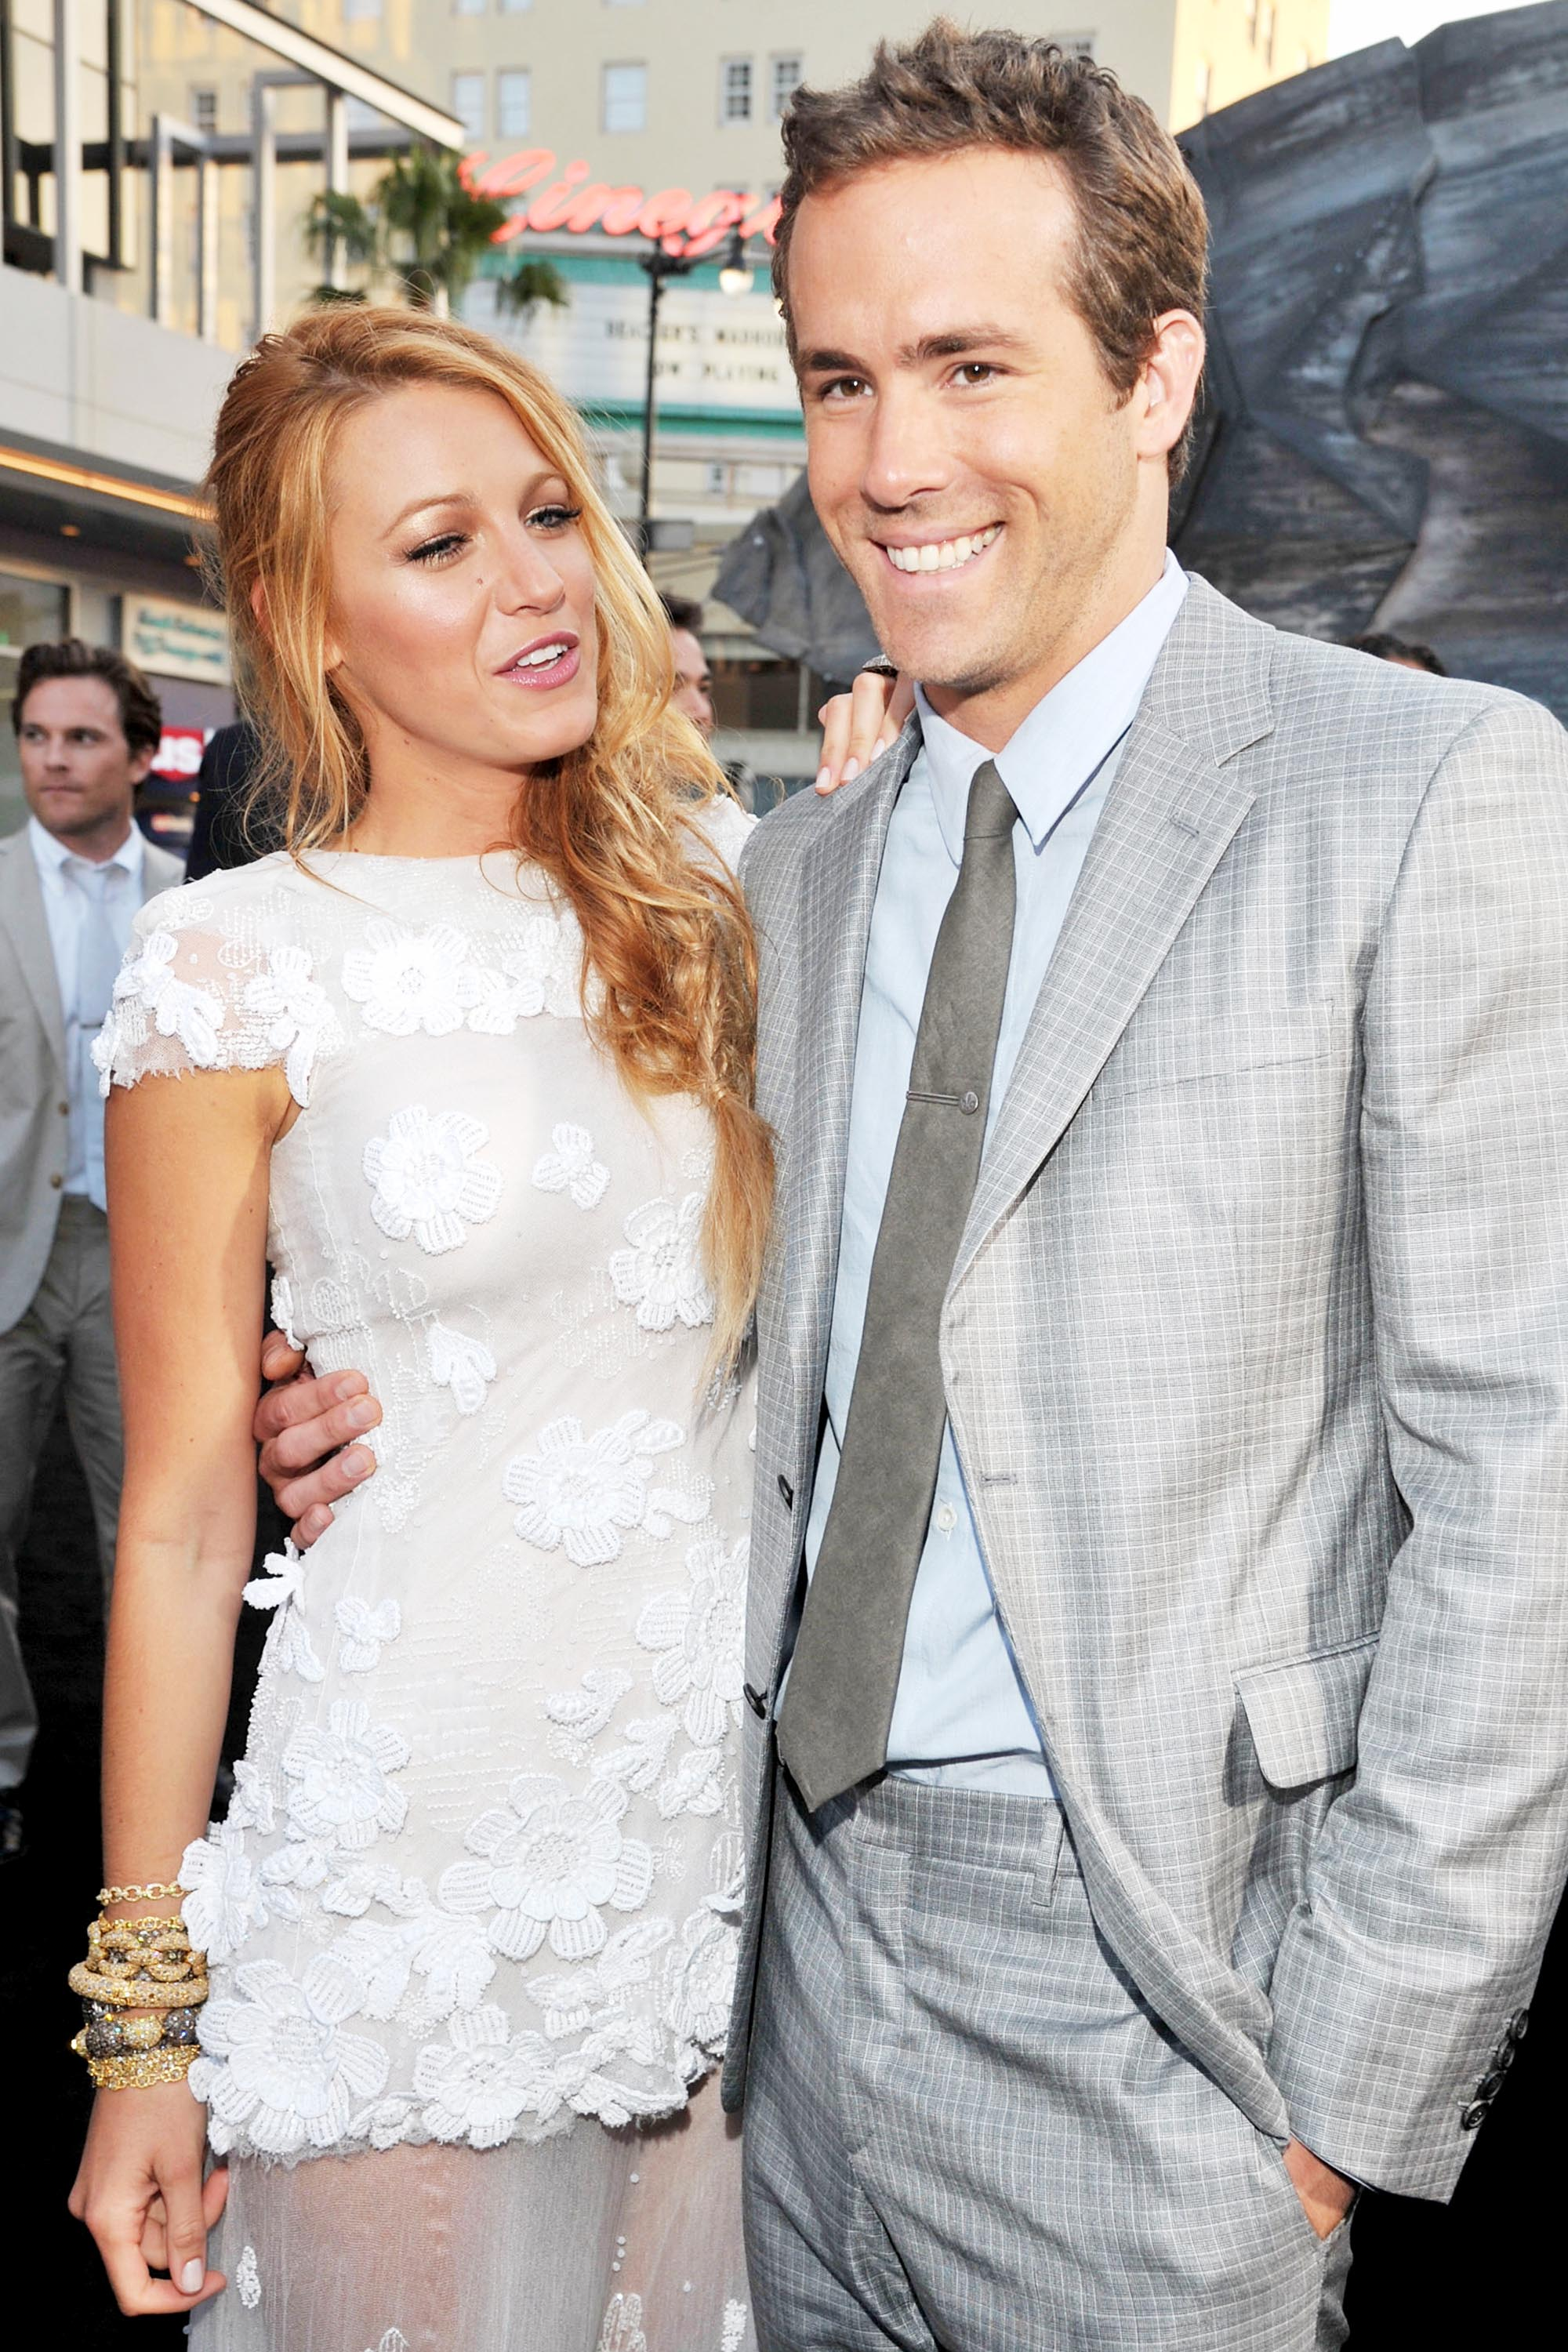 Celebrity couples who met on set - KXLY